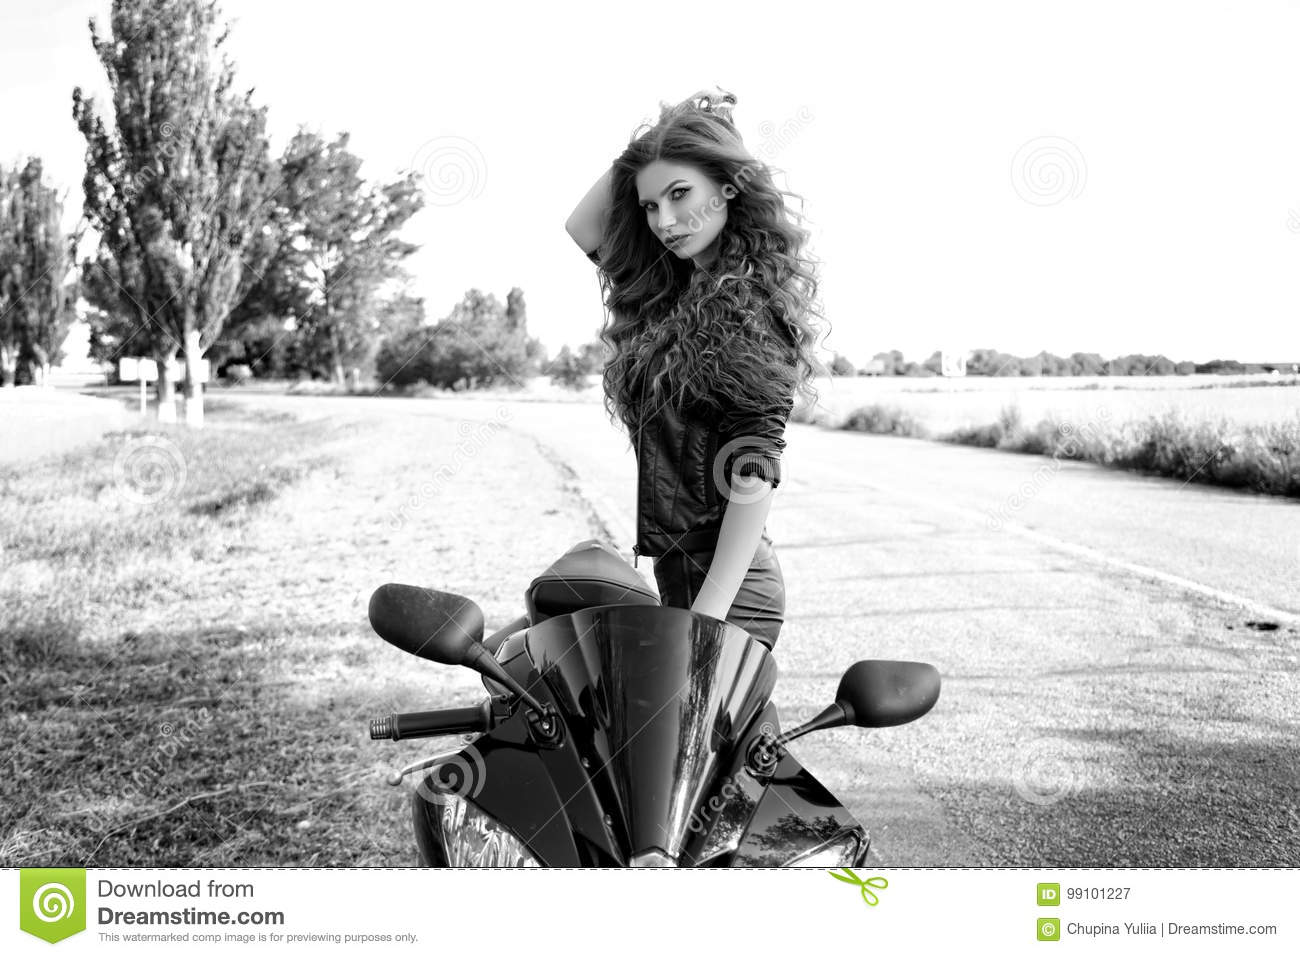 Black and white photo of a beautiful biker girl with a motorcycle